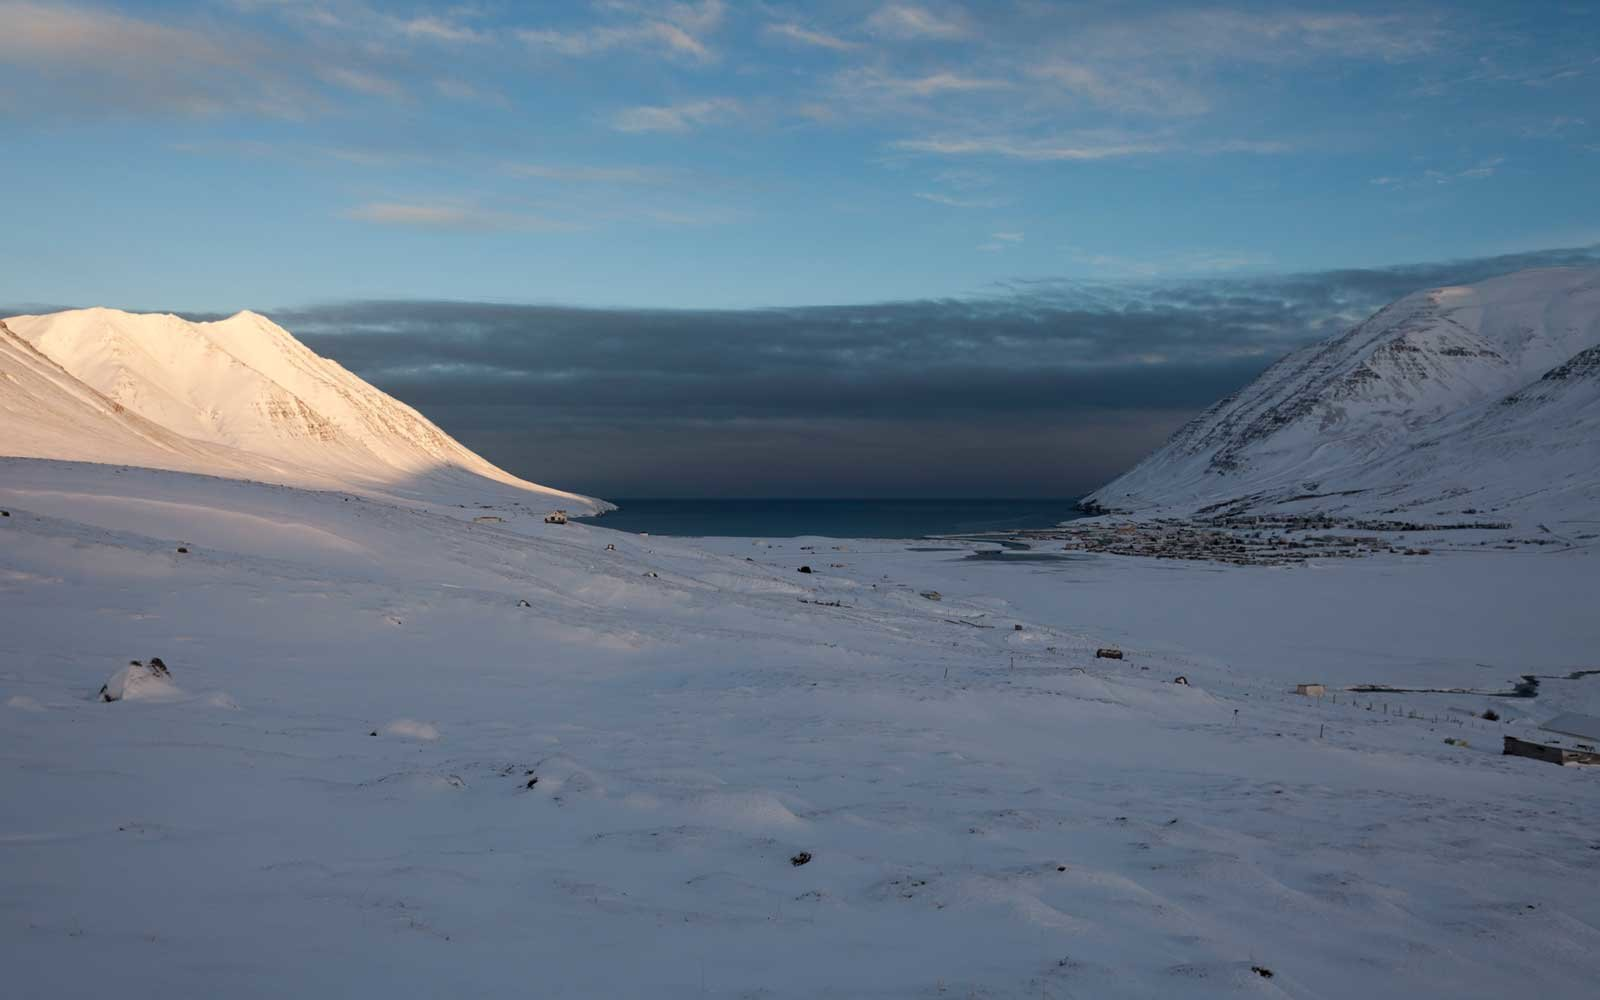 North Iceland during wintertime